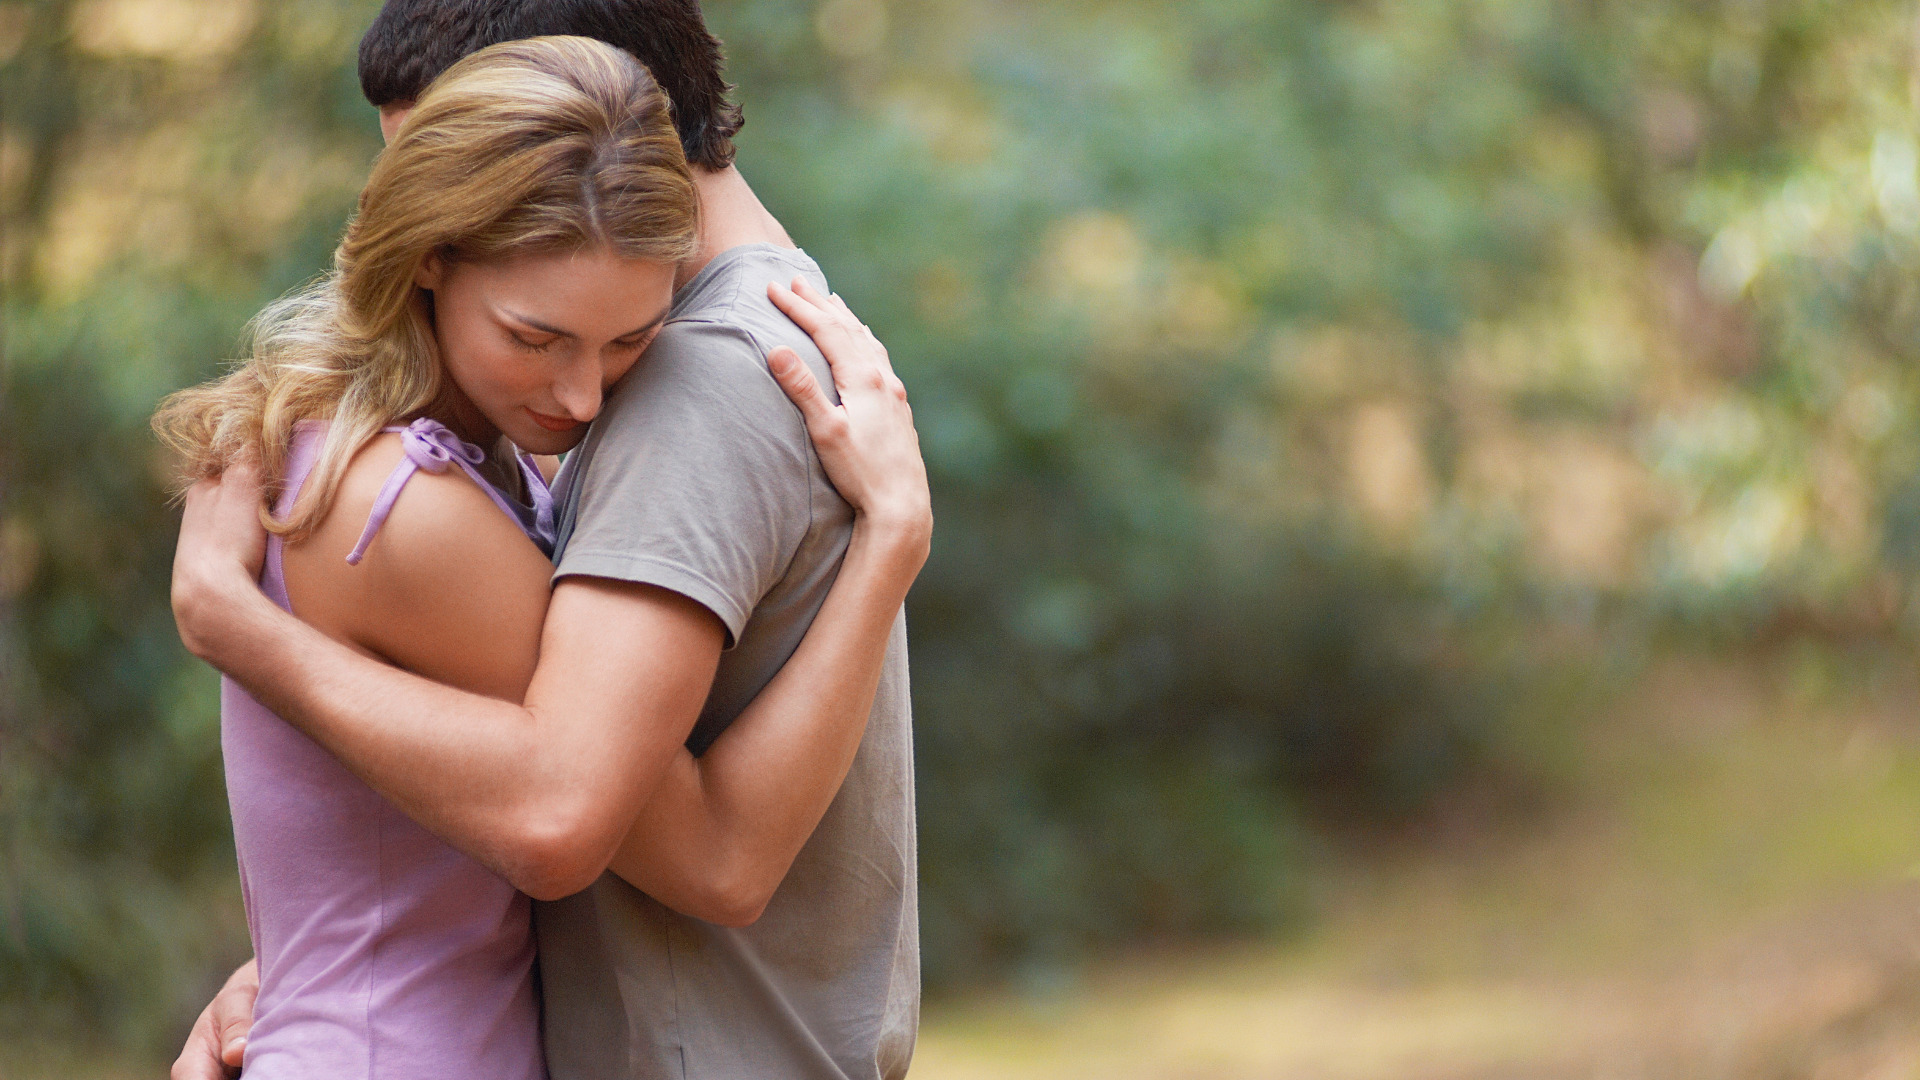 10 different types of hugs and what they mean